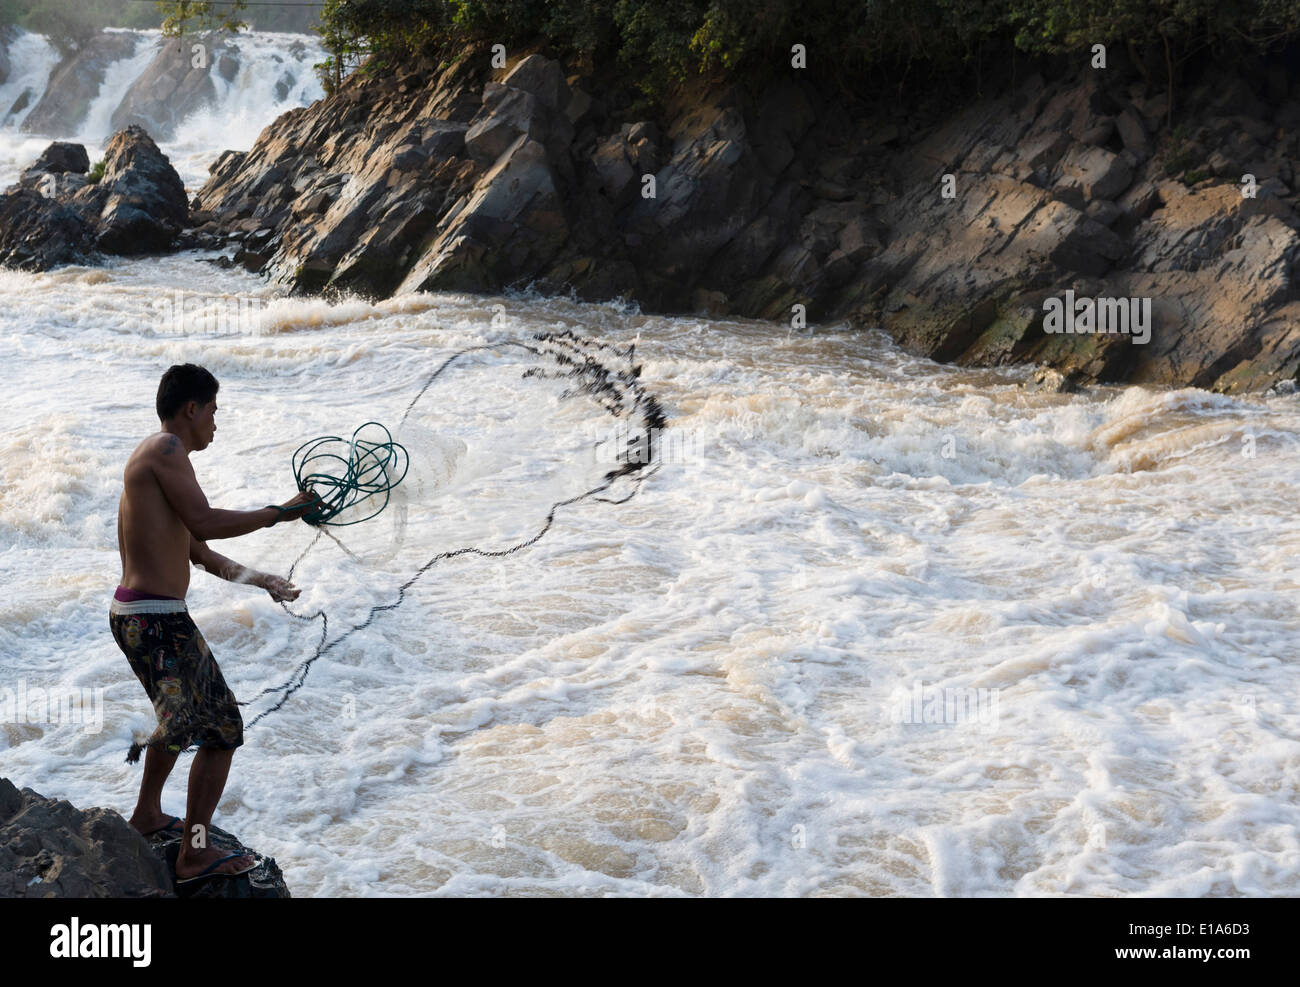 Net fishing at the Khone Phapheng Falls, Mekong River,, Champasak, Laos. Fisherman is Saimoun from Ban Takho Village, 28 years. - Stock Image